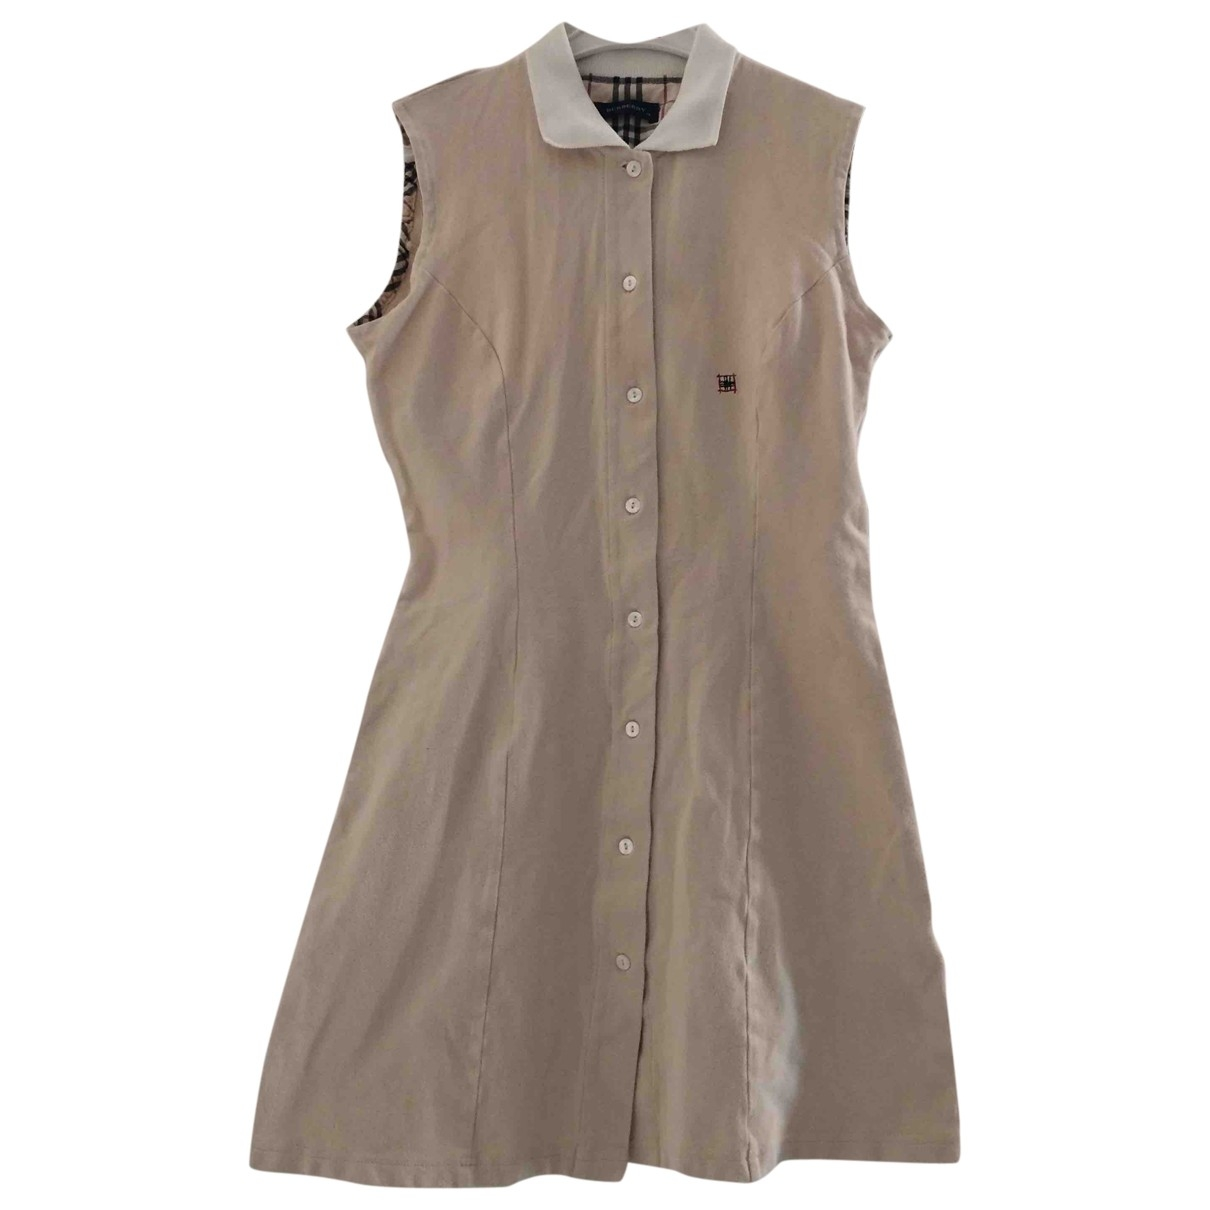 Burberry \N Beige Cotton - elasthane dress for Kids 14 years - S UK